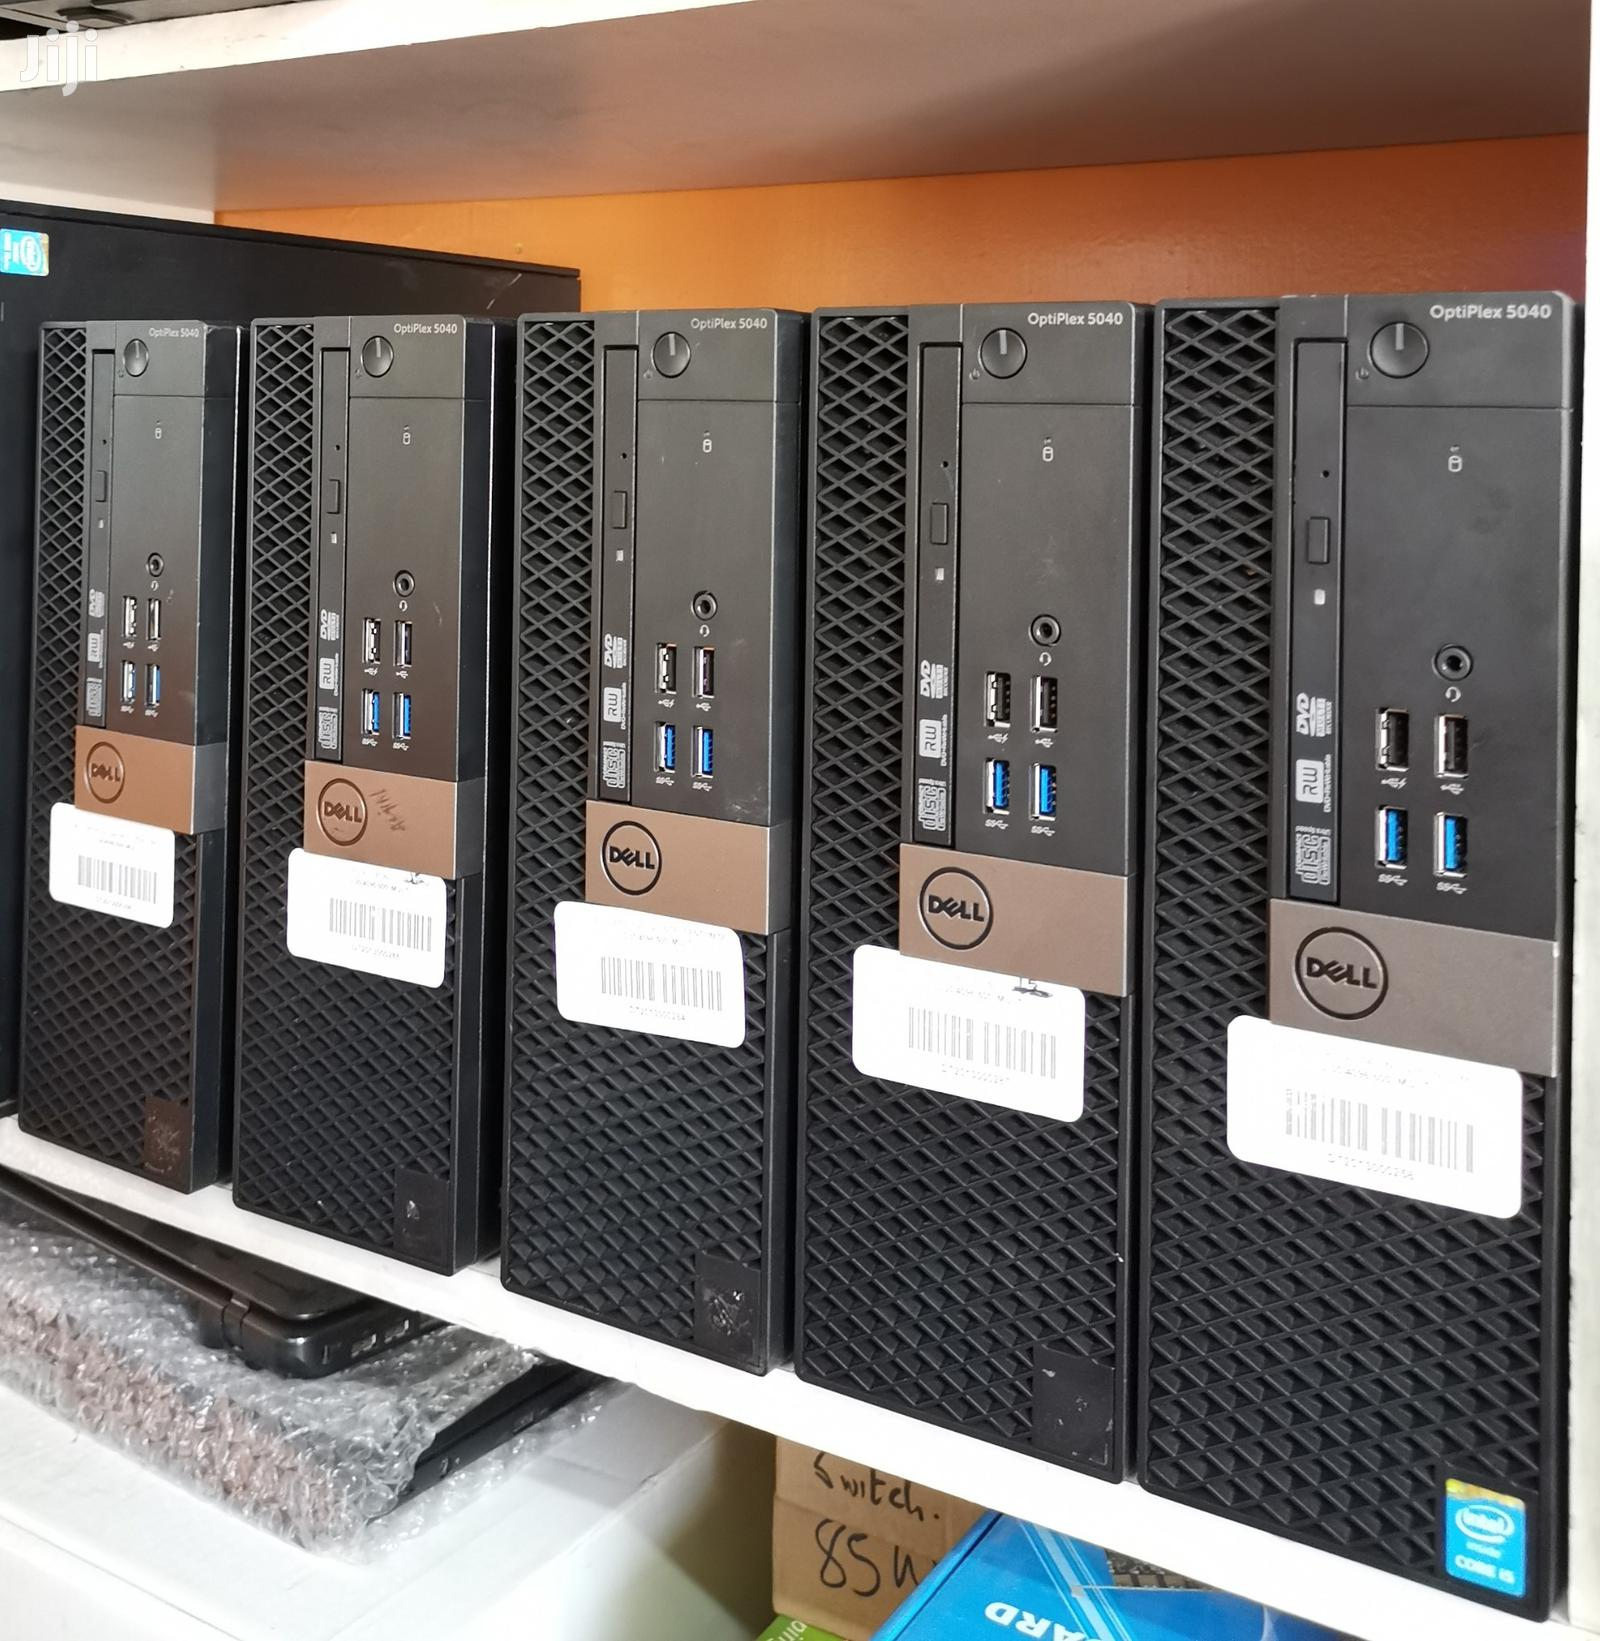 Desktop Computer Dell OptiPlex 5050 4GB Intel Core i5 HDD 500GB | Laptops & Computers for sale in Nairobi Central, Nairobi, Kenya